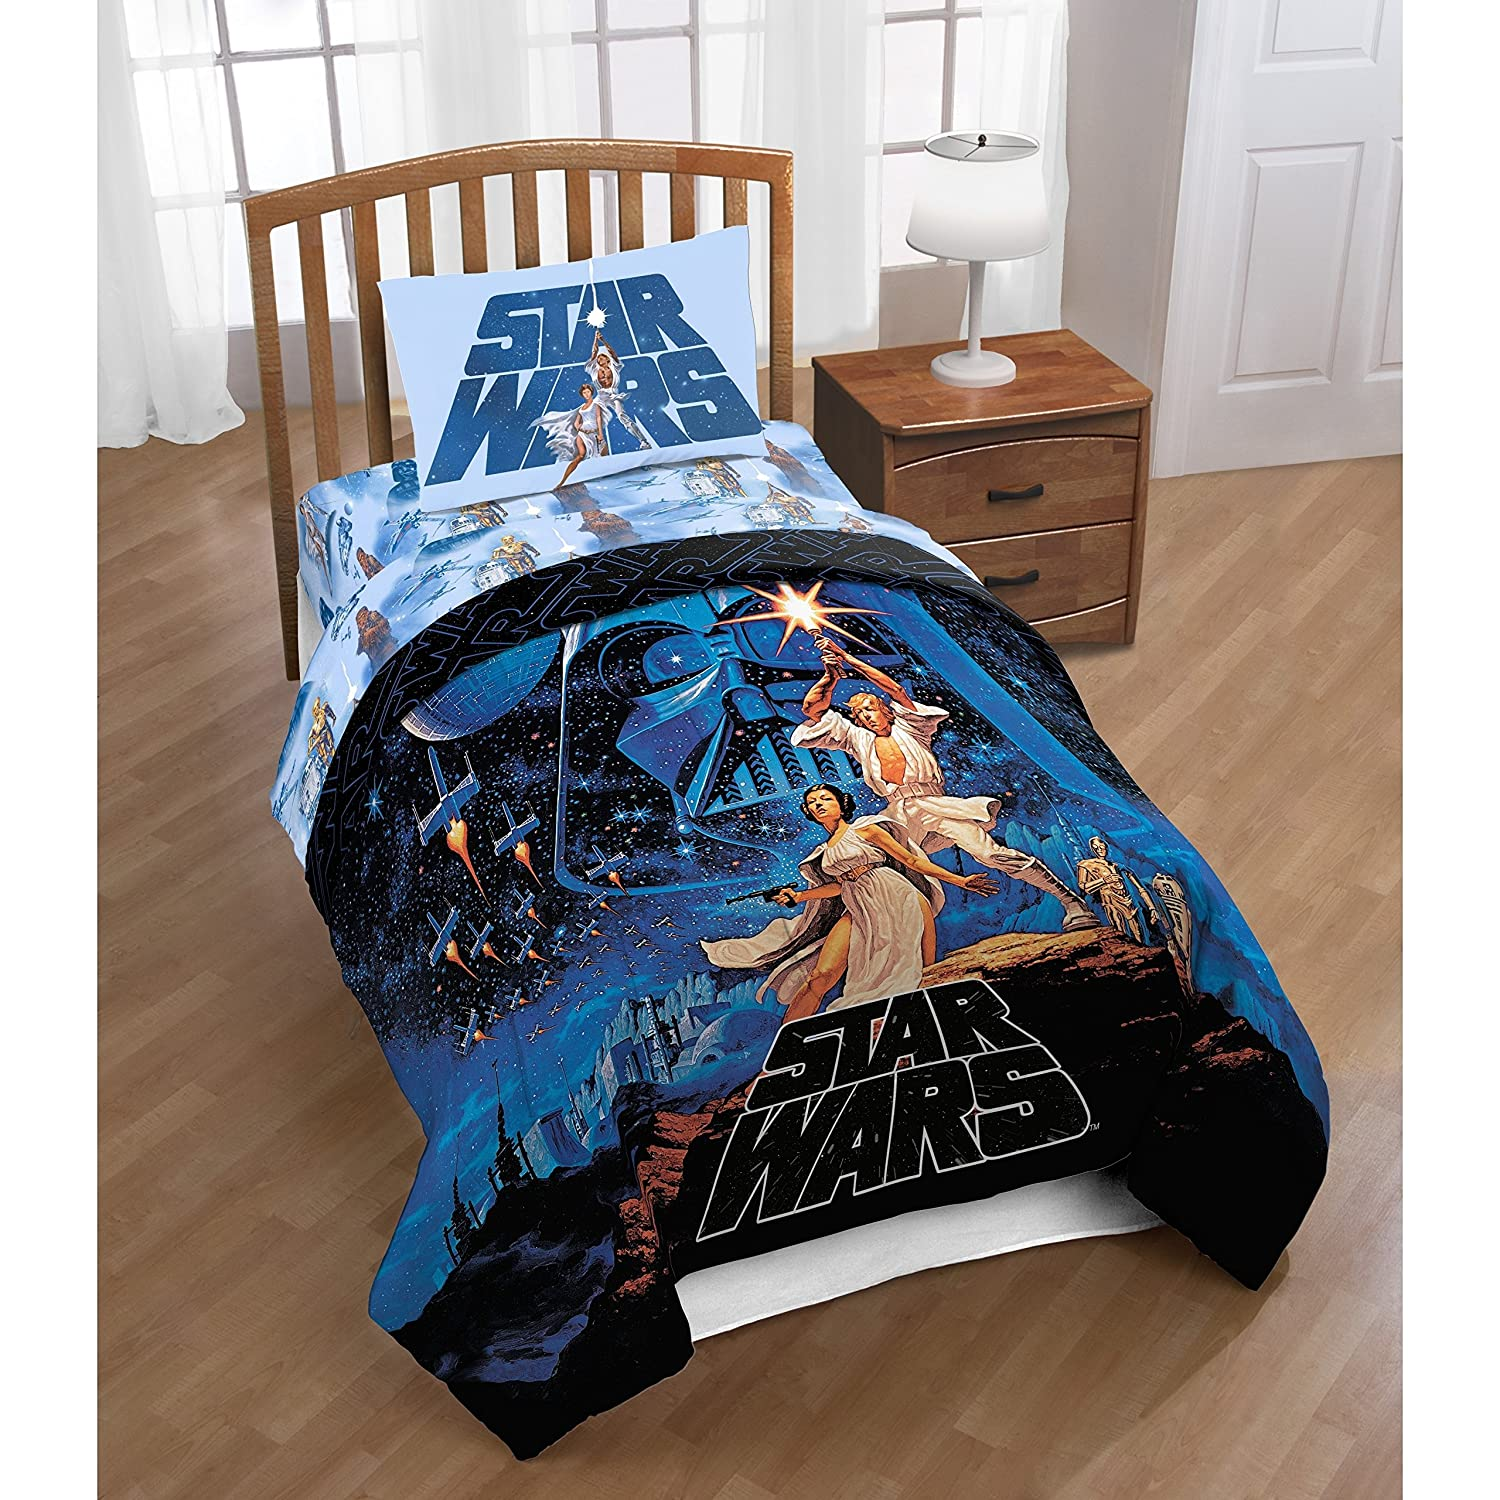 1 Piece Boys Blue Star Wars Themed Reversible Comforter Full Queen Size, Colorful Black Starwars Movie Bedding Classic Characters Princess Leia & Han Solo Print, Bold Fun Cosmic Design, Soft Polyester